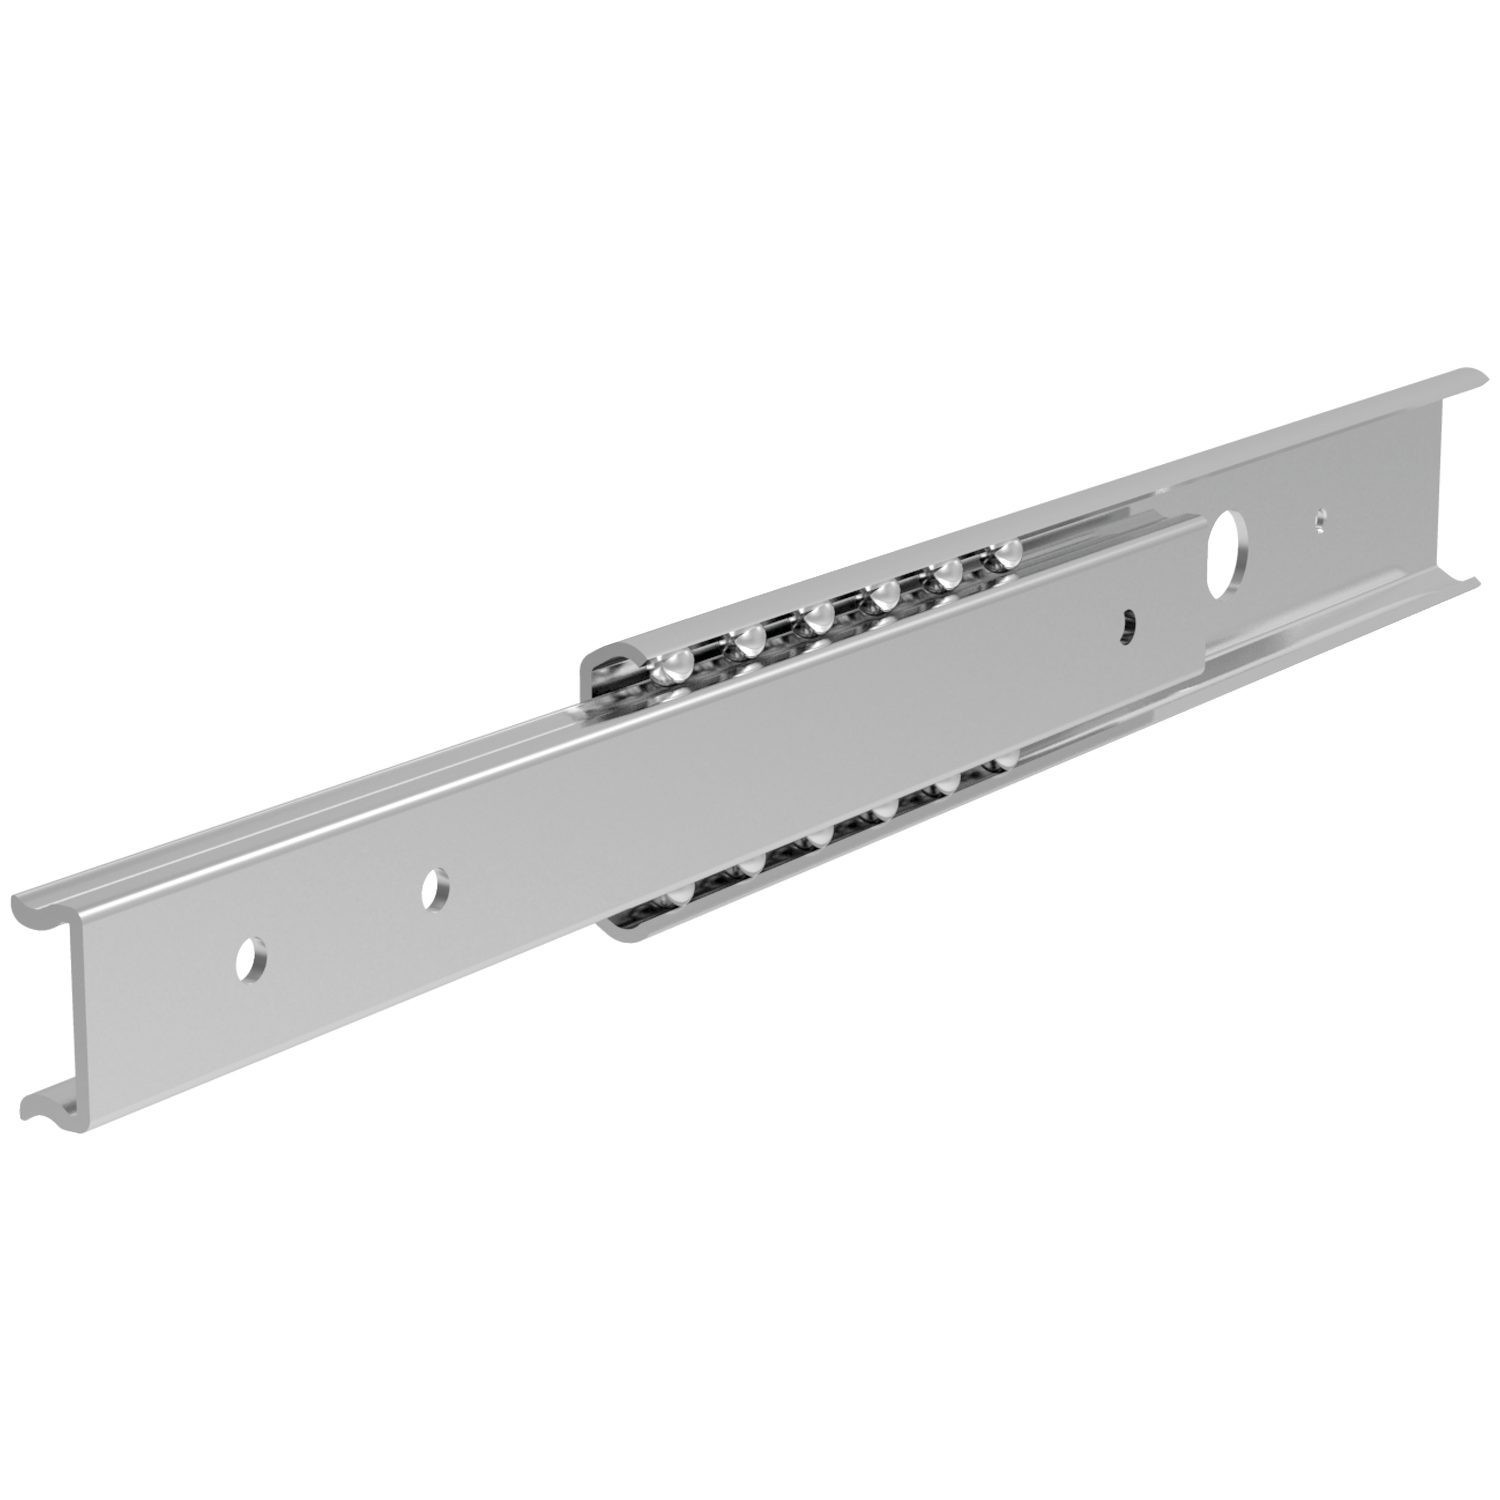 Lock-out Drawer Slides Lock Out drawer slides, loads up to 220kg per pair.